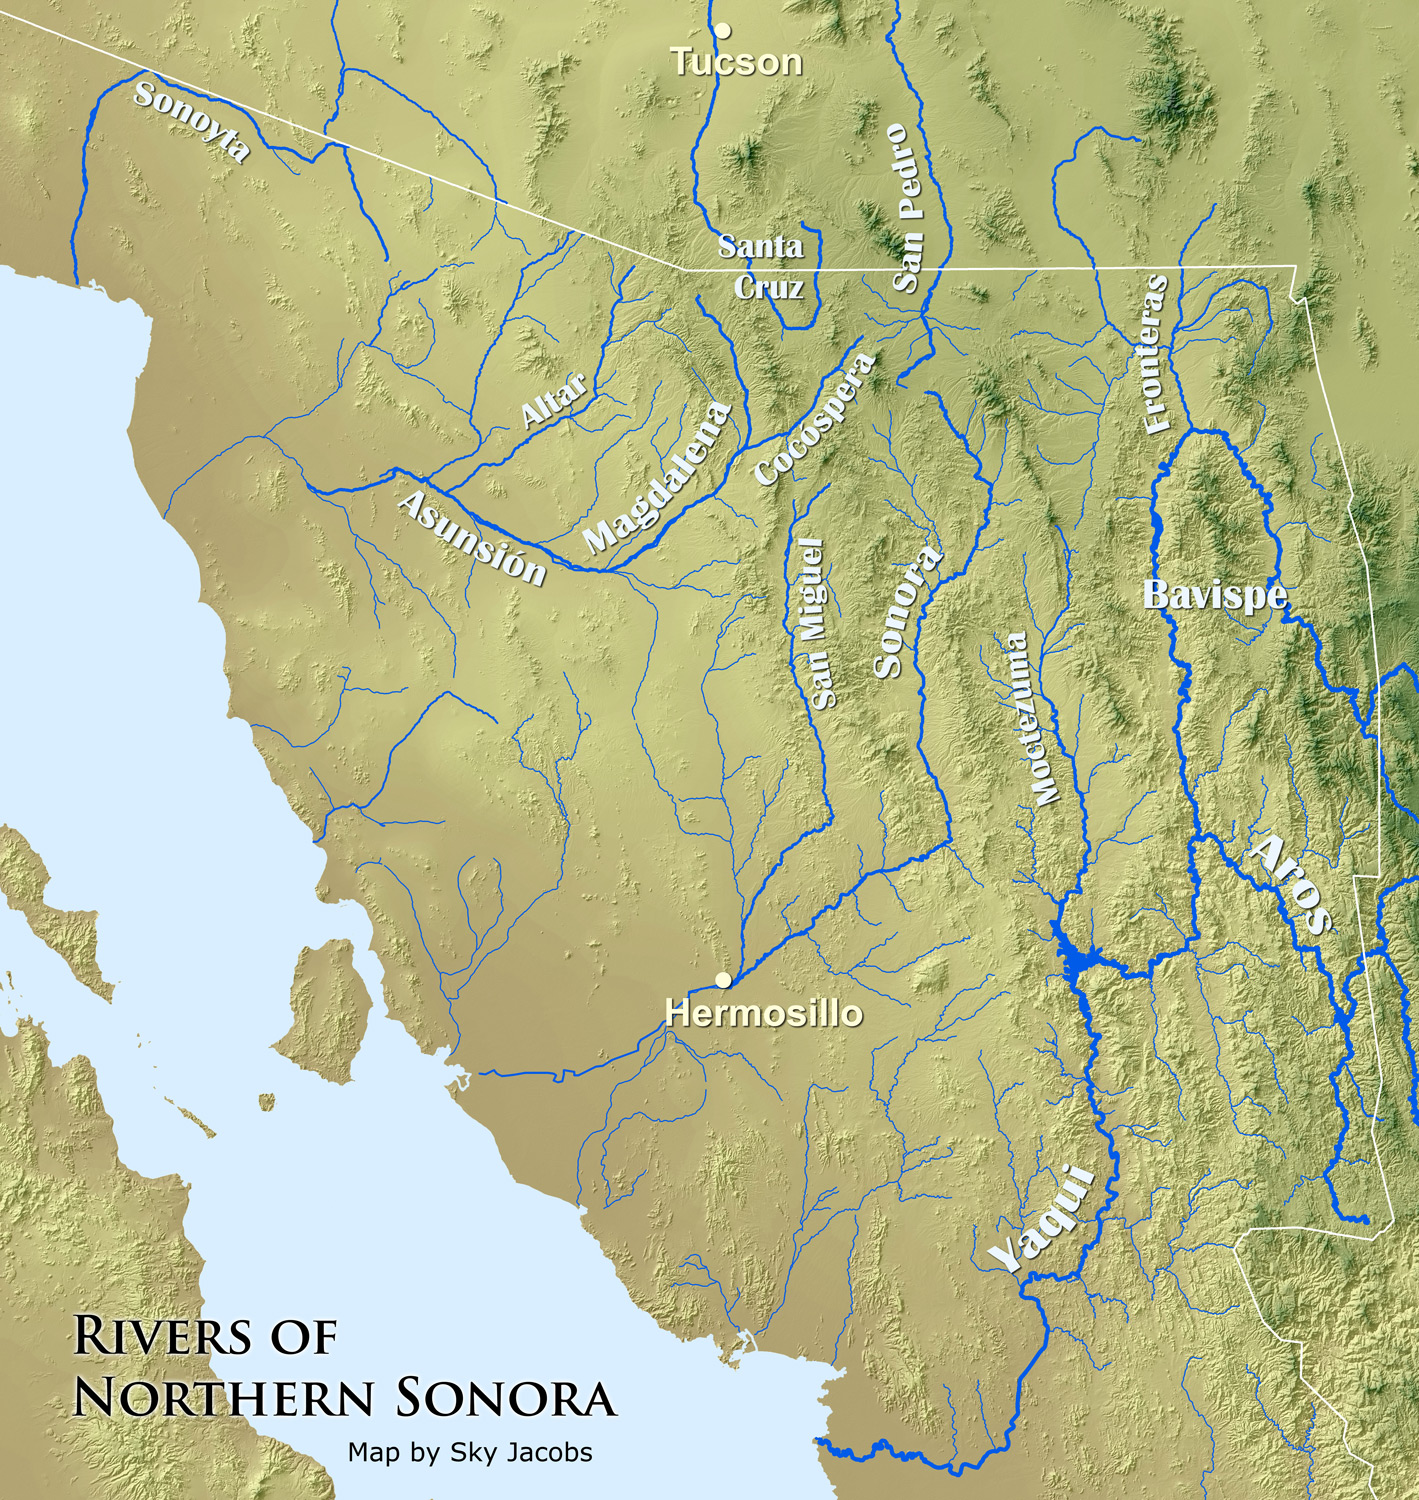 map of the rivers of northern sonora mexico